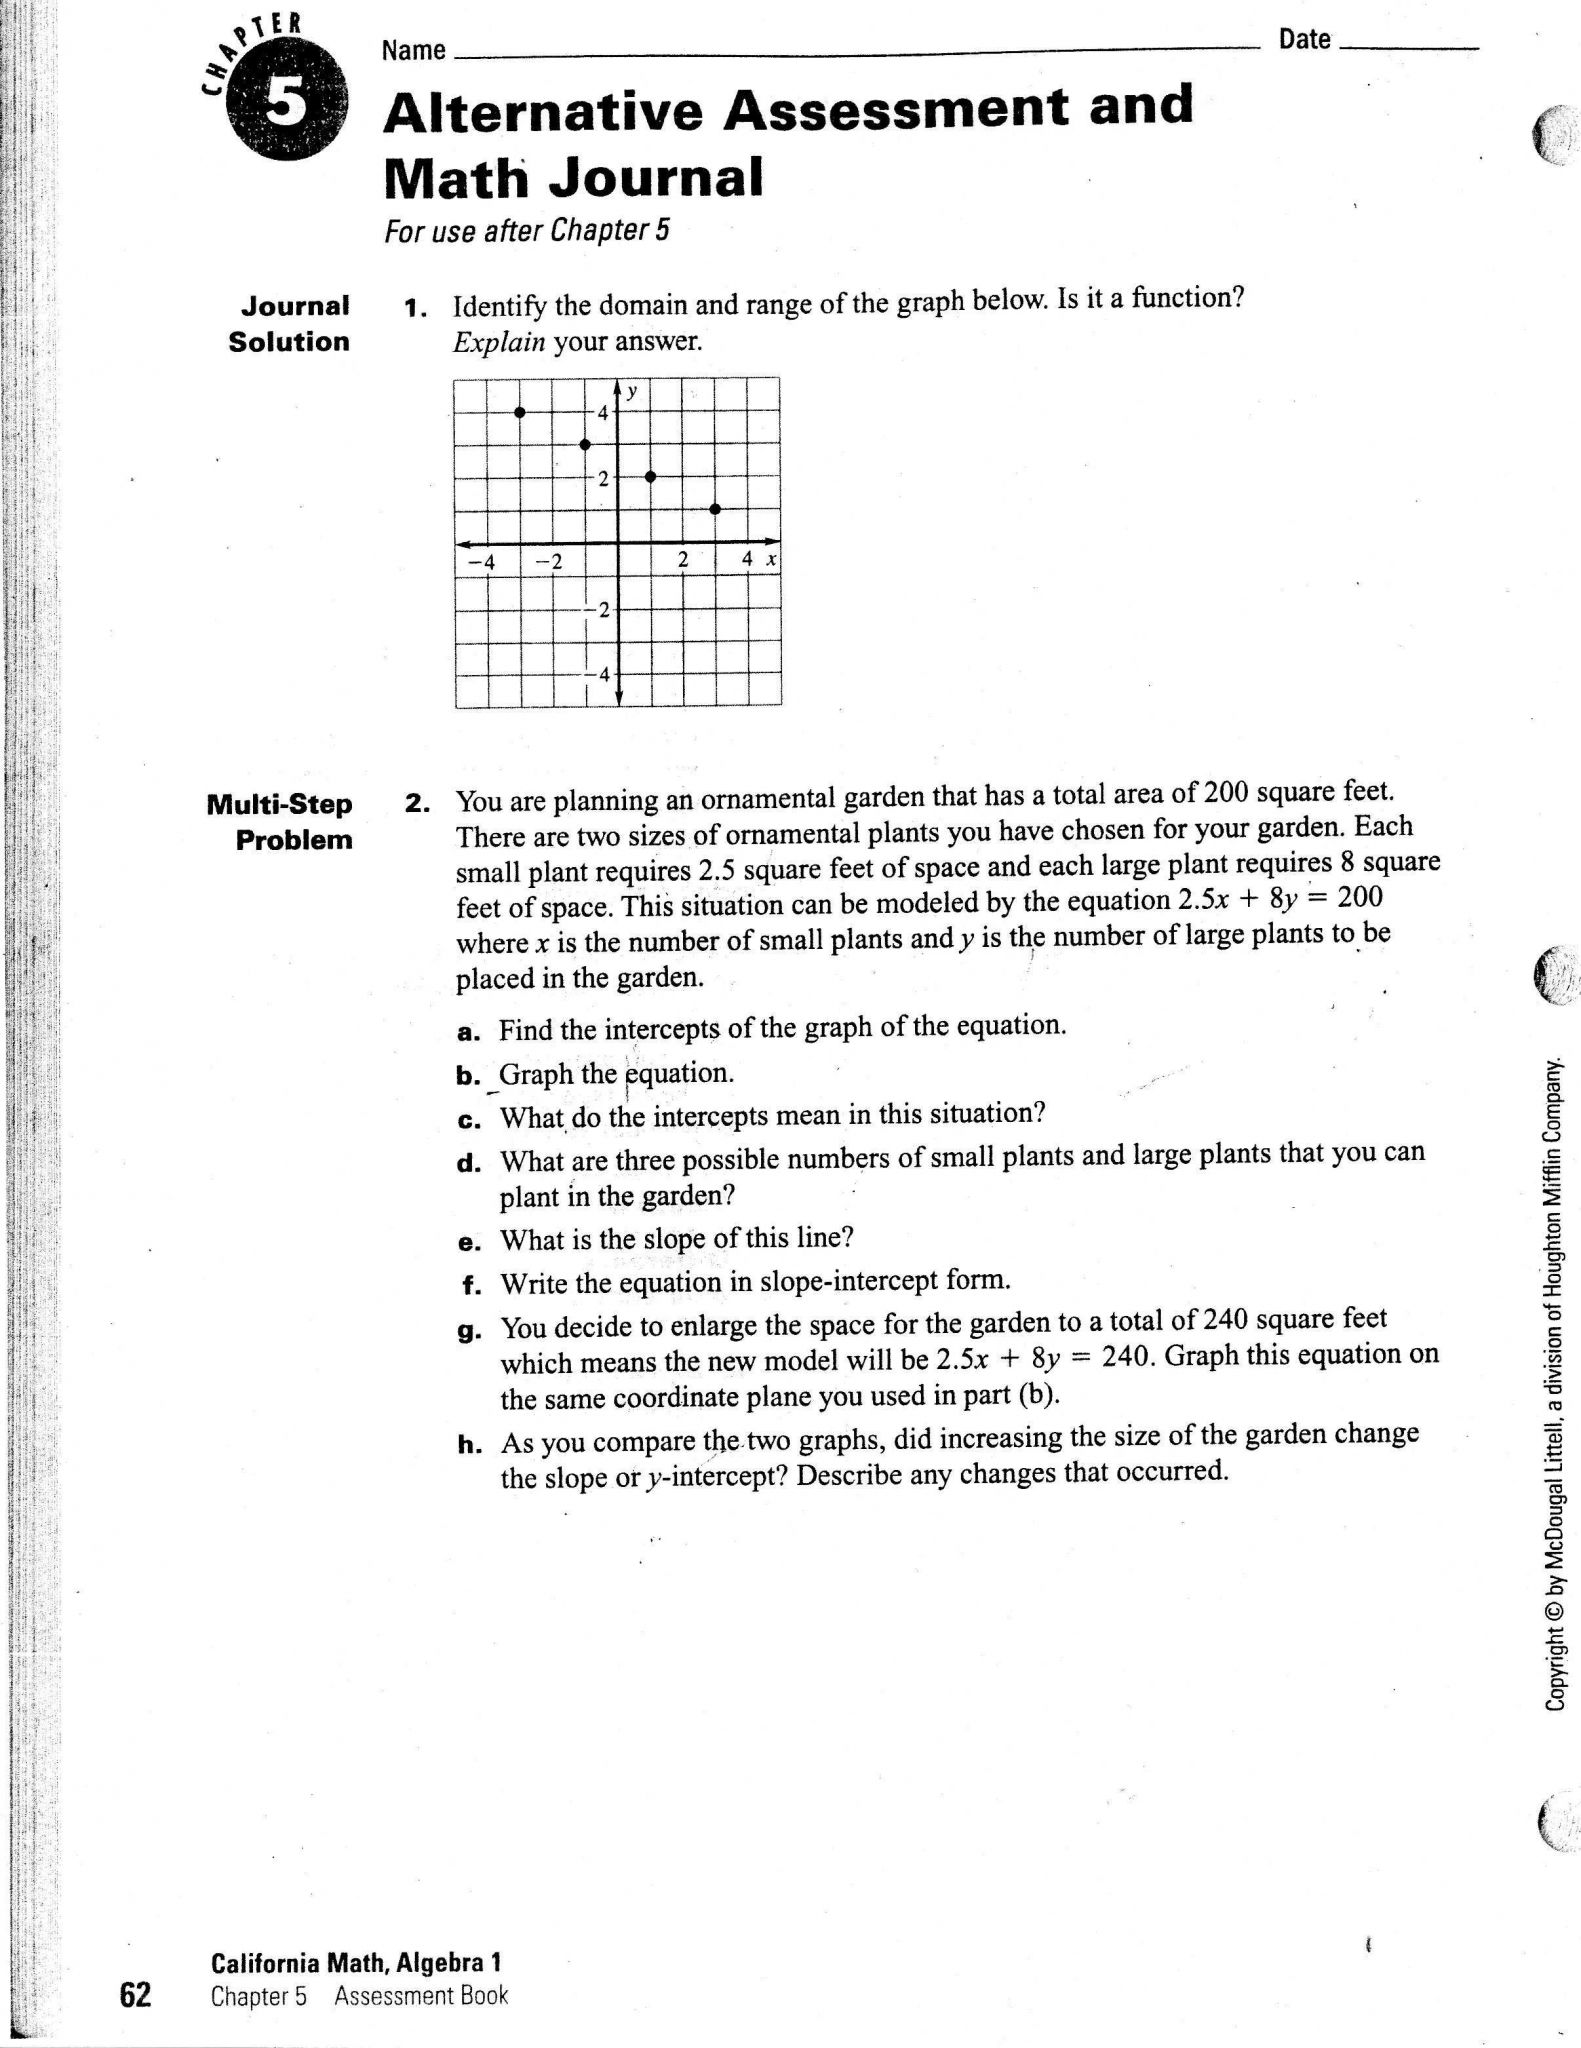 Domain and Range Worksheet Answers as Well as Word Equations Worksheet Answers Page 62 Fresh Western Center